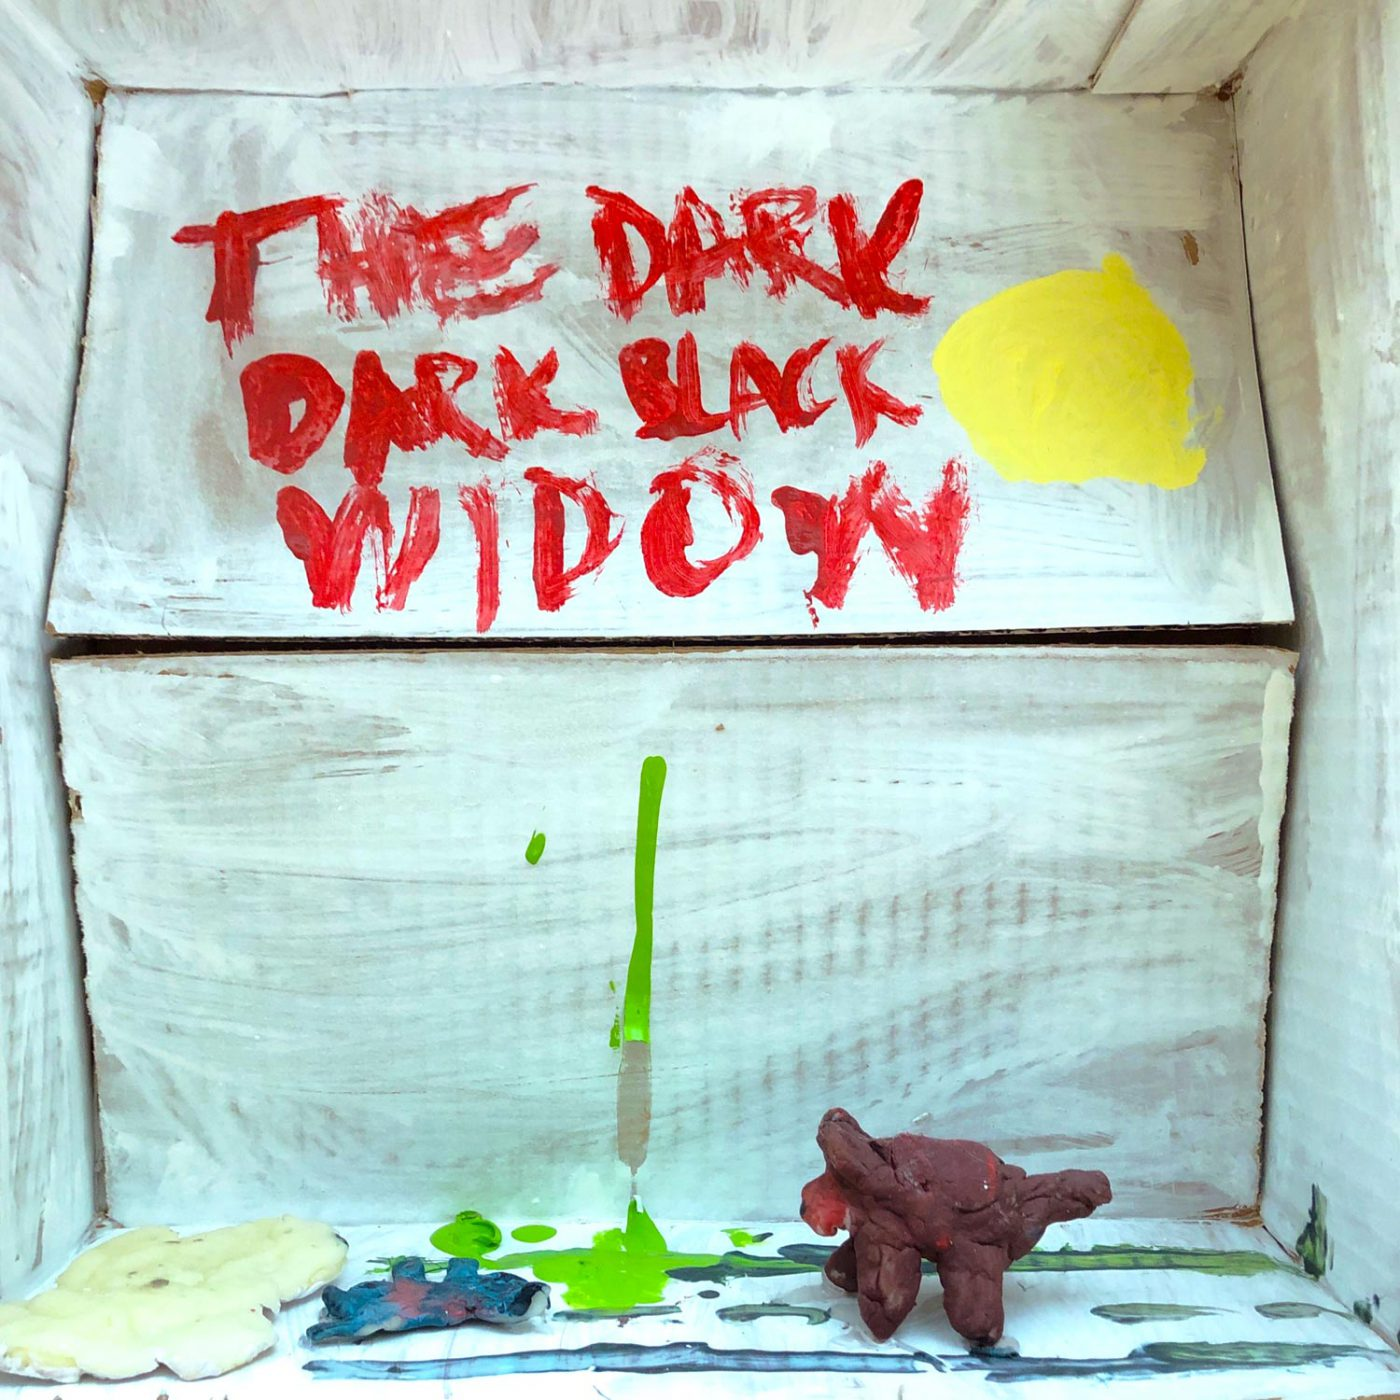 The dark dark black widow (Mar 14, 2019)